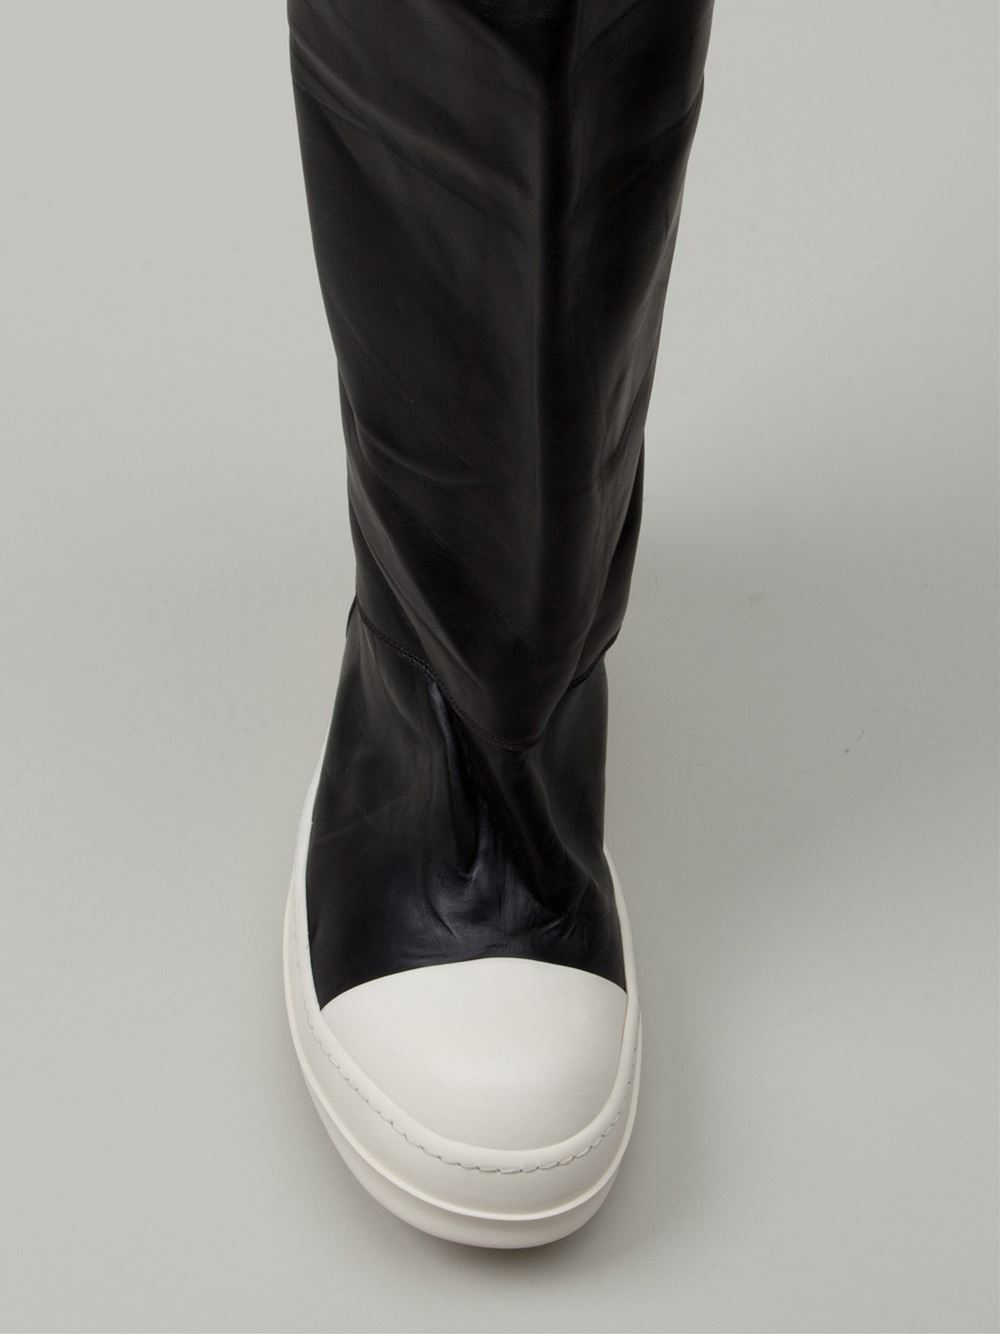 Rick Owens Knee High Sneaker Boots in